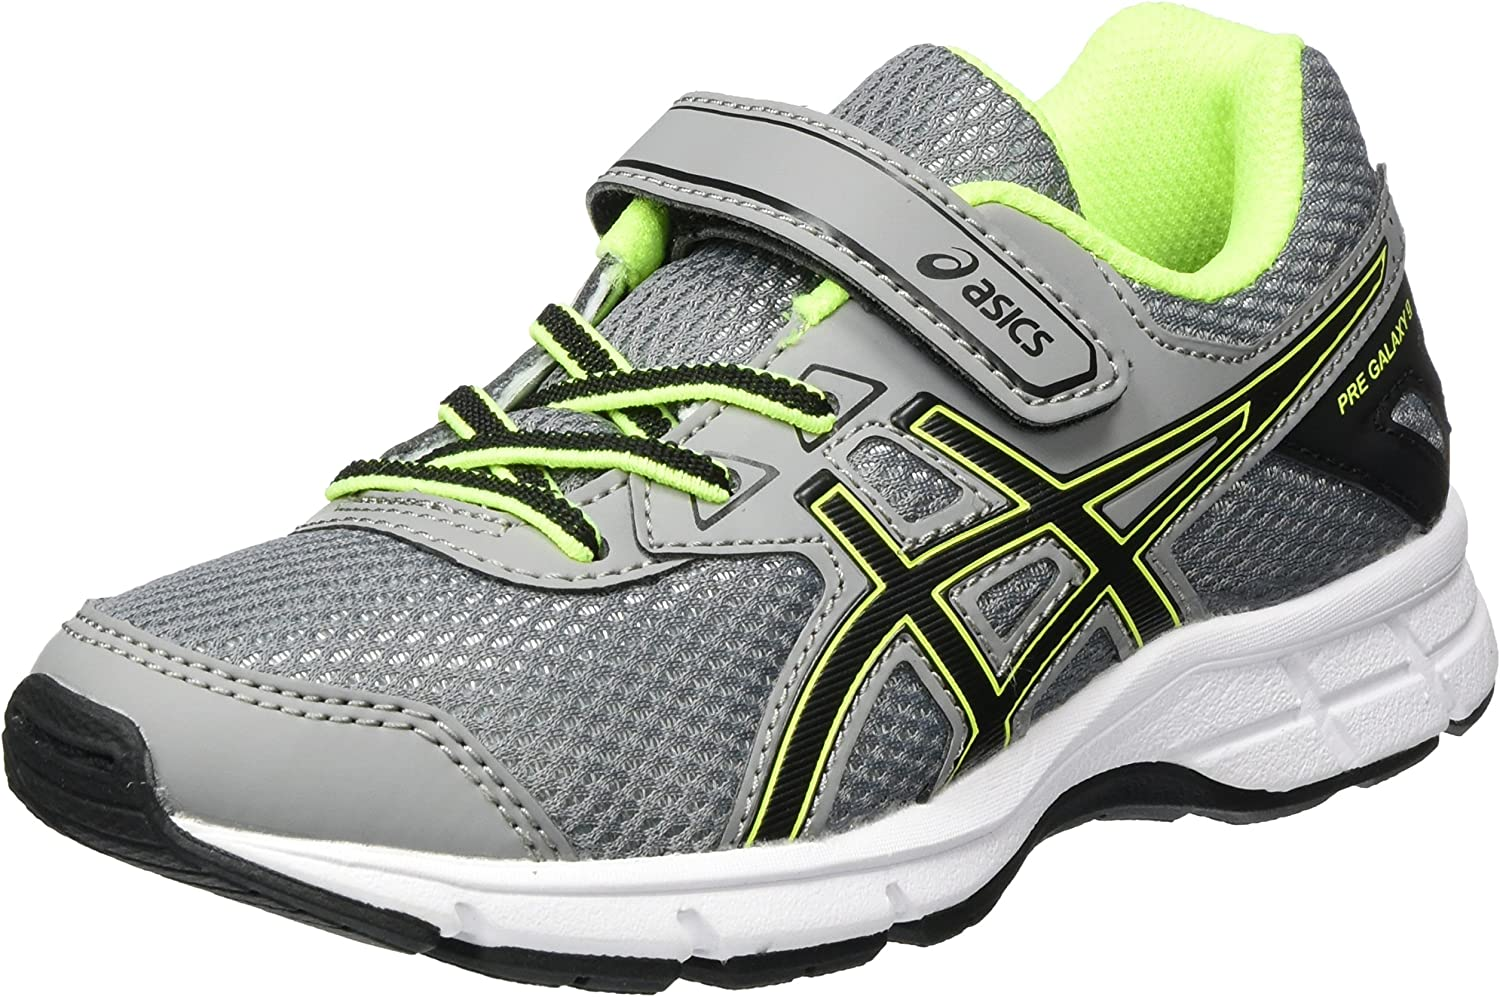 Asics Pre Galaxy 9 PS, Zapatillas de Gimnasia Unisex Niños, Gris (Aluminum/ Black/Safety Yellow), 33 EU: Amazon.es: Zapatos y complementos